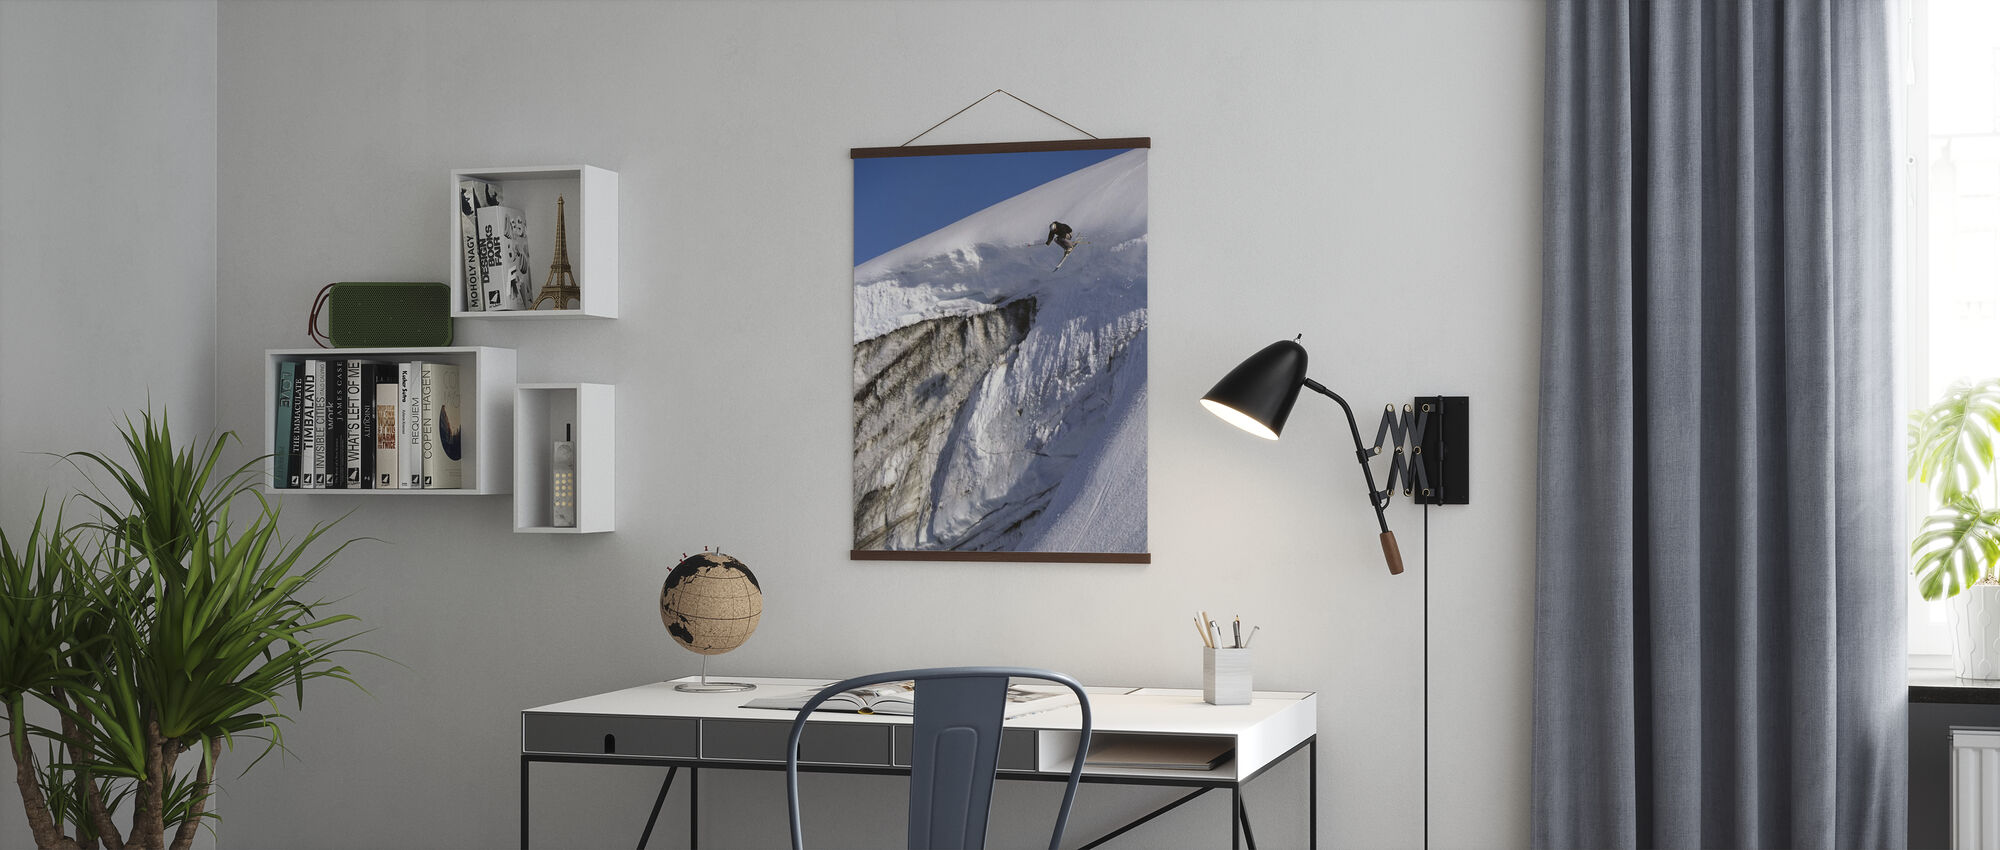 Skiing on the Apussuit Glacier - Poster - Office